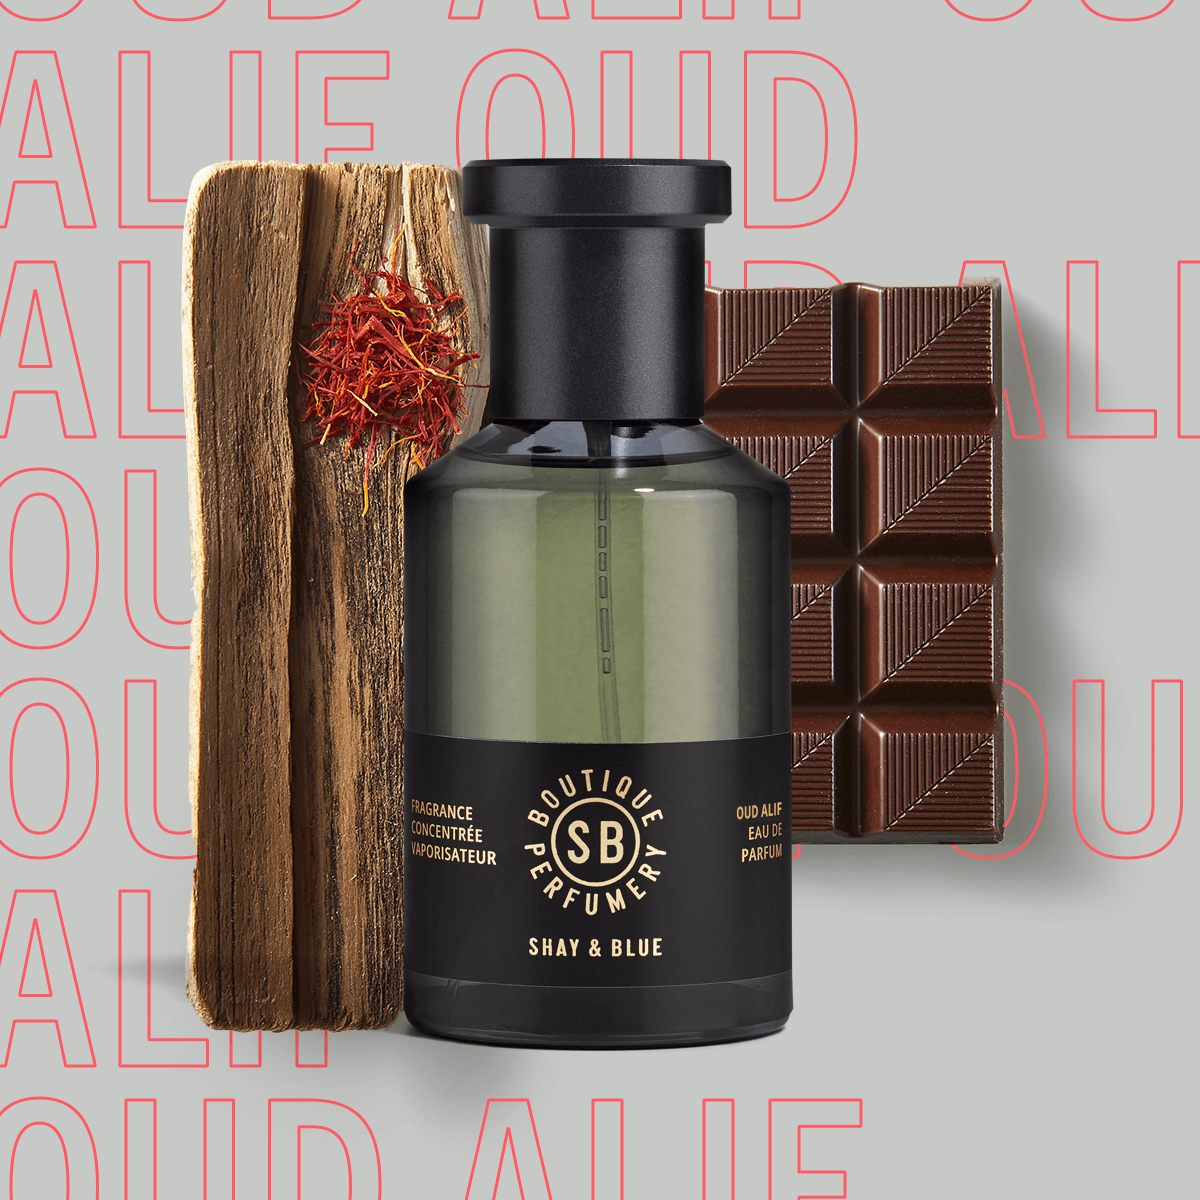 Oud Alif Fragrance Concentrate 100ml | The finest oud agarwood spiked with chocolat noir, saffron and dark patchouli. | Clean All Gender Fragrance | Shay & Blue